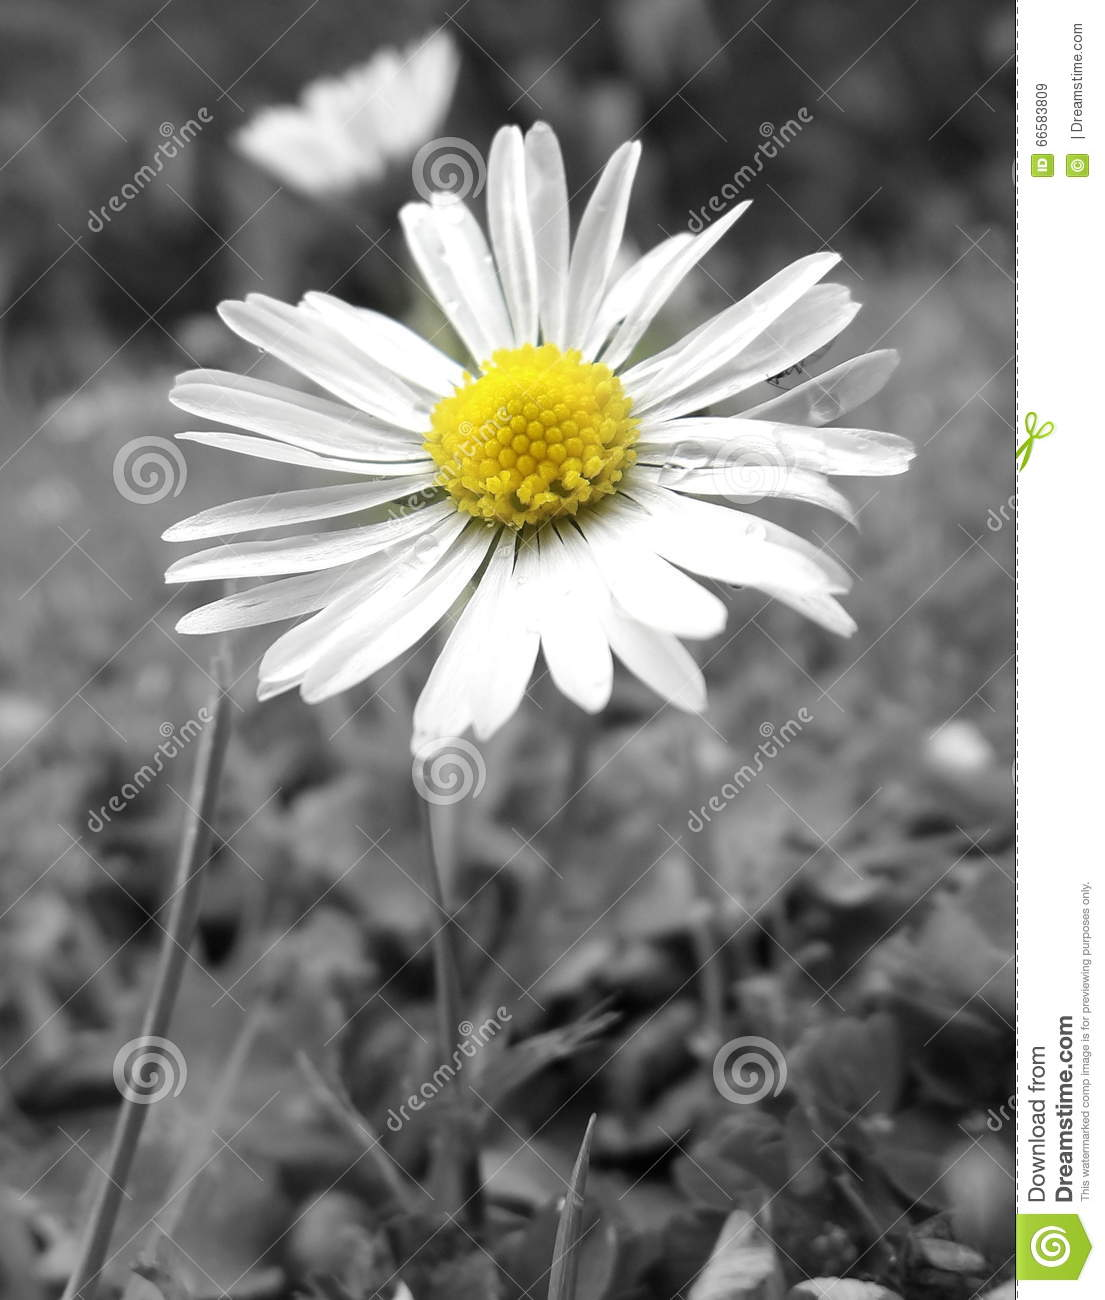 Yellow Daisy Stock Image Image Of Flower Ricoh Centre 66583809